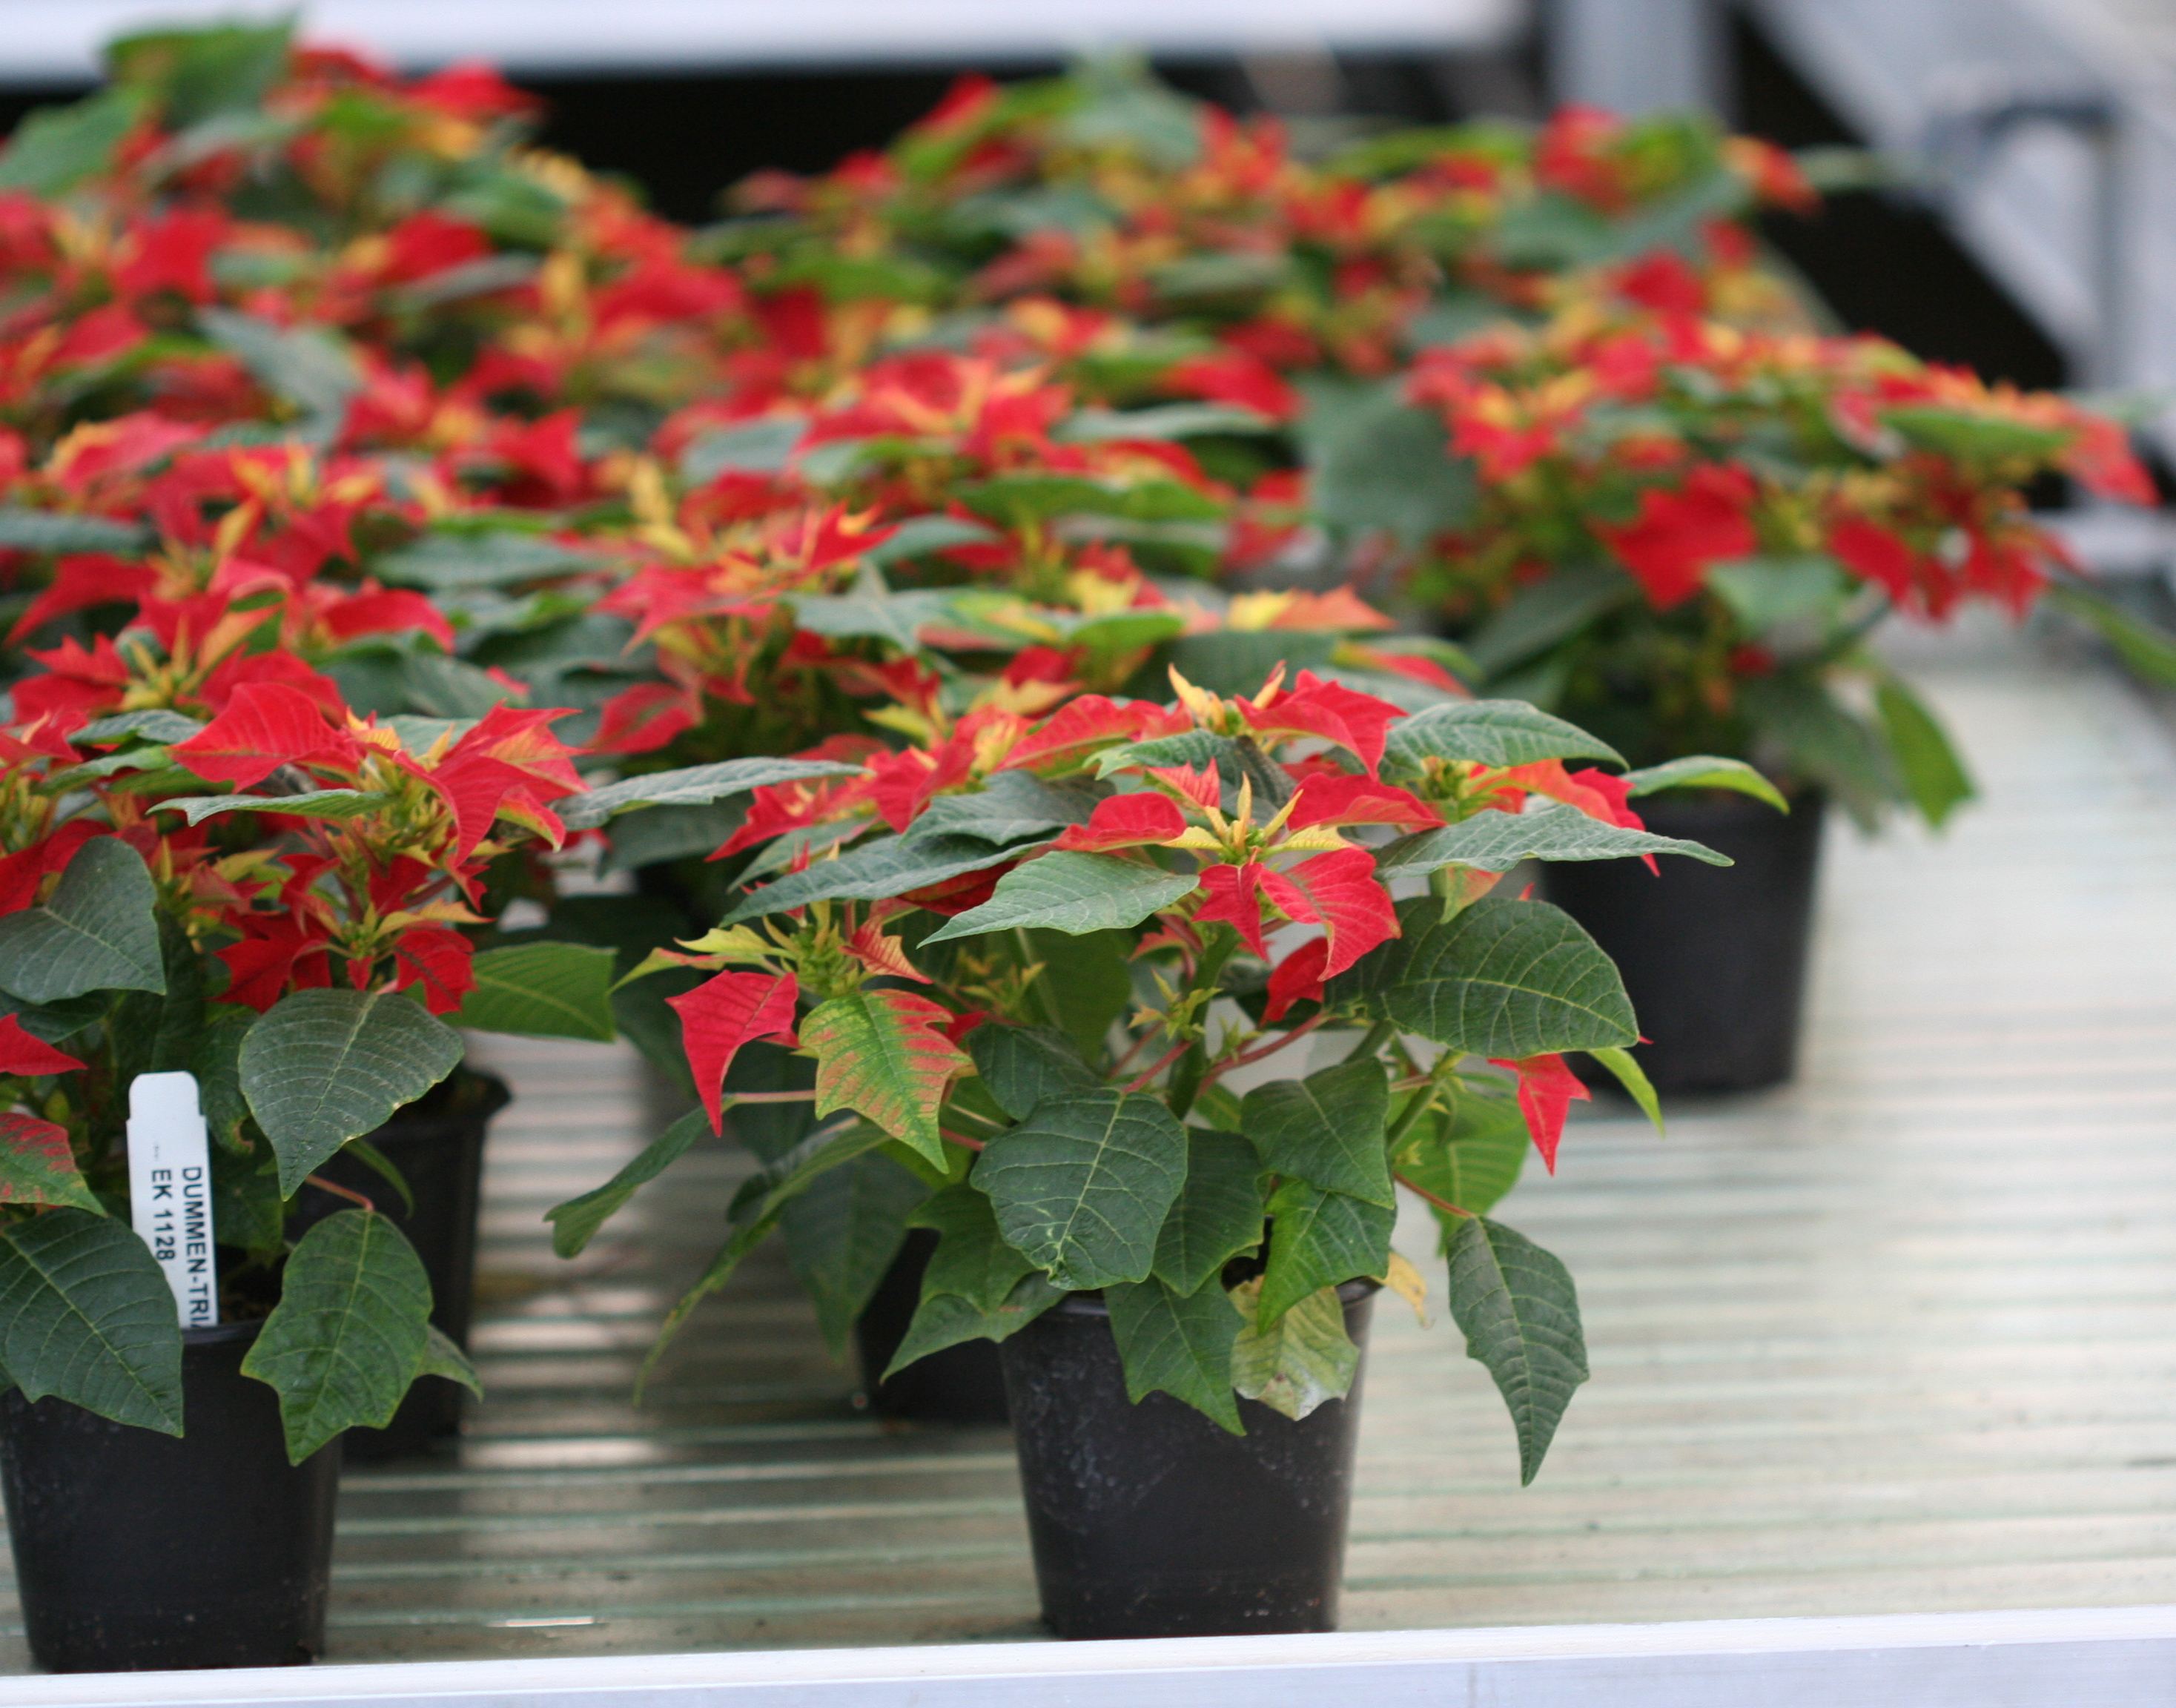 These small poinsettias would be attractive in the office.